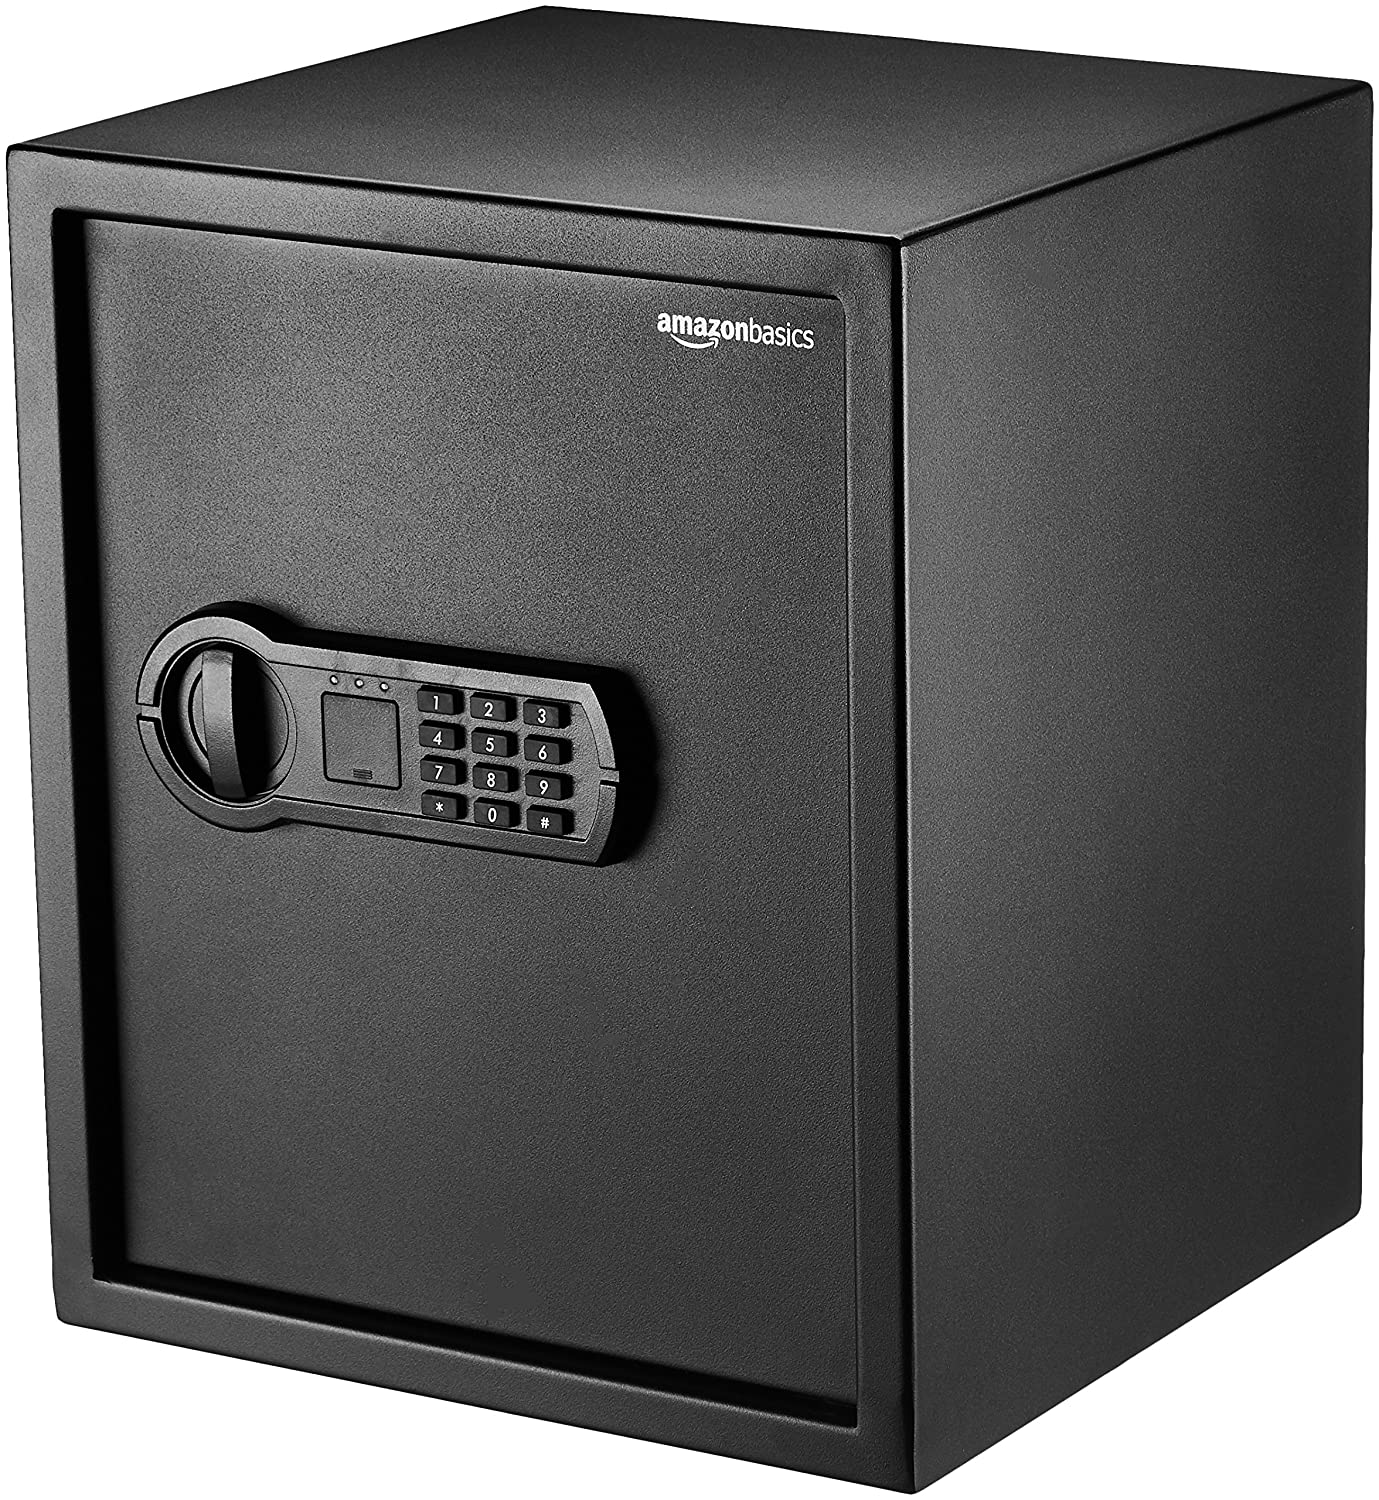 AmazonBasics Home Safe - 1.52 Cubic Feet